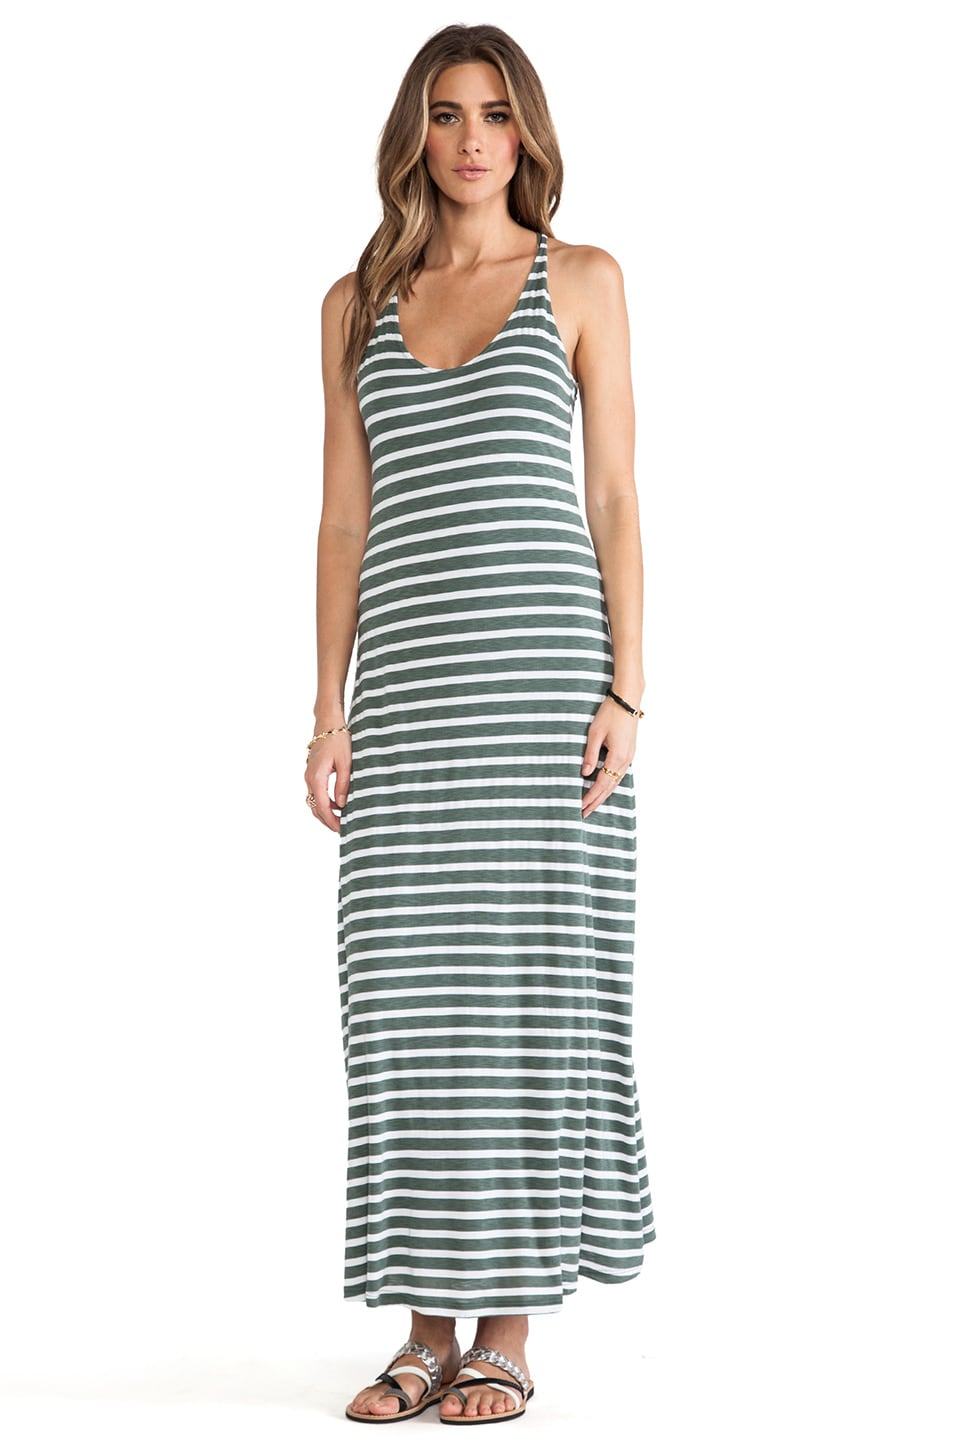 Splendid Mediterranean Stripe Maxi Dress in Camo